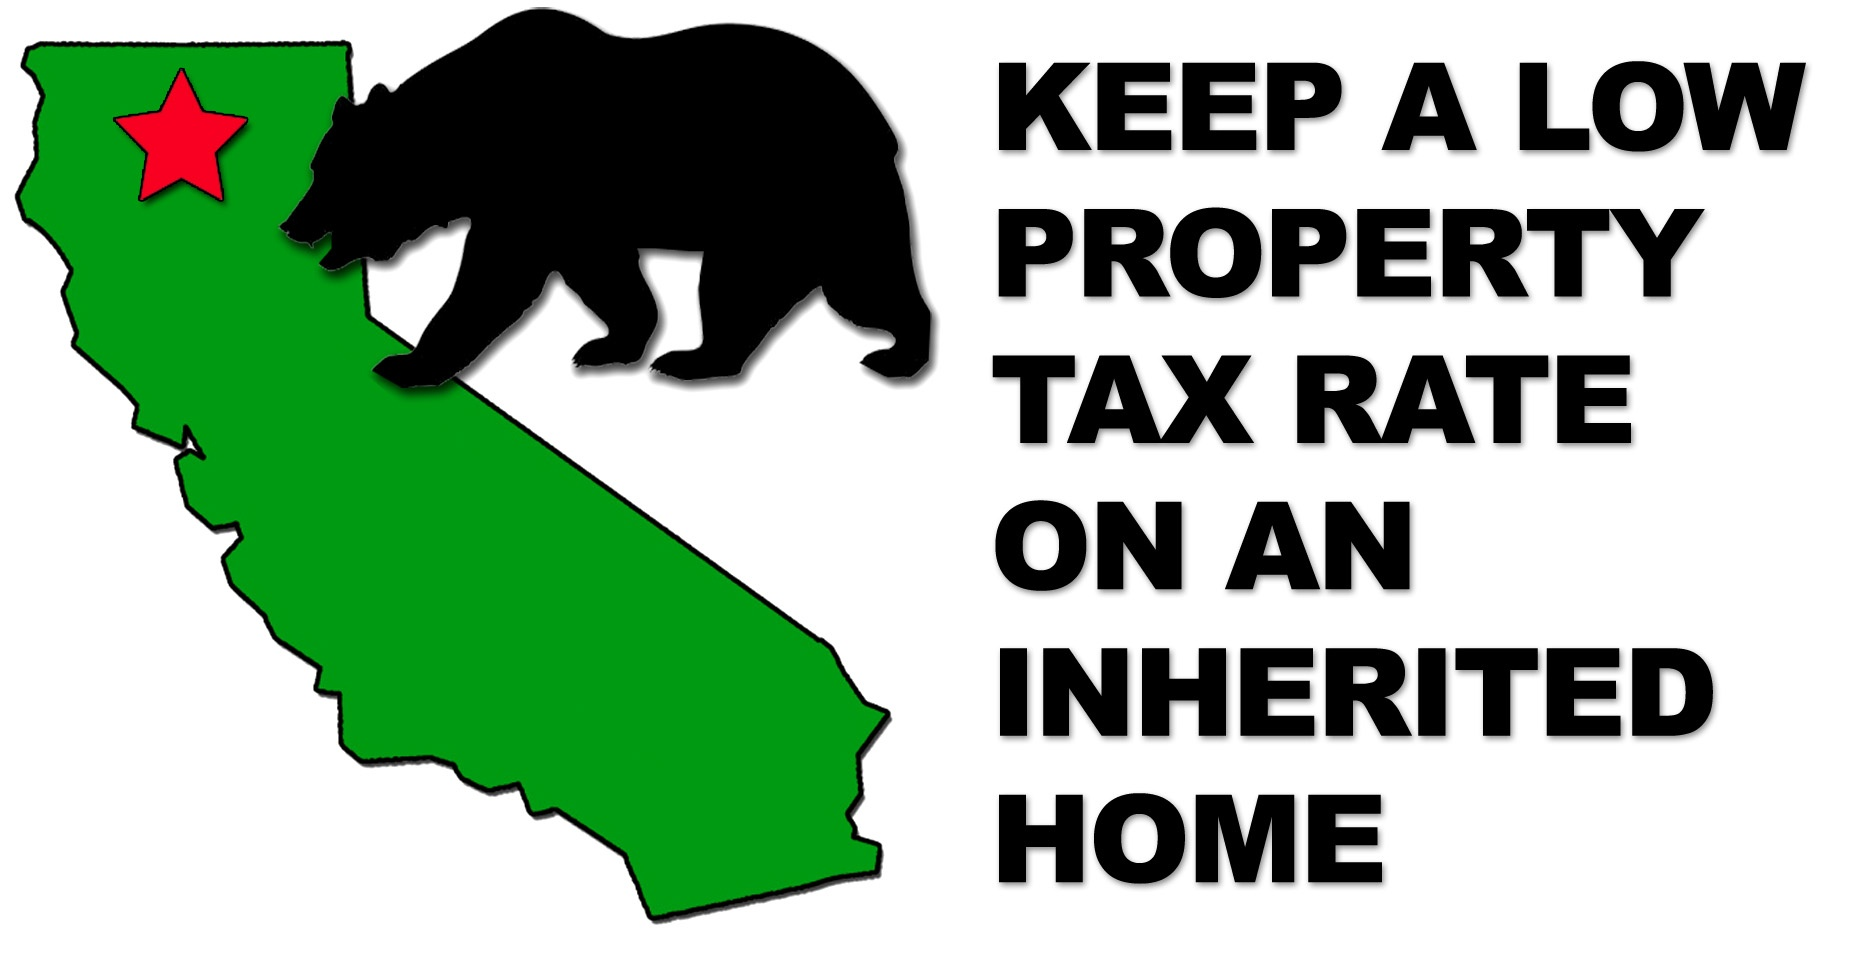 How to keep a parents property tax rate on an inherited home.